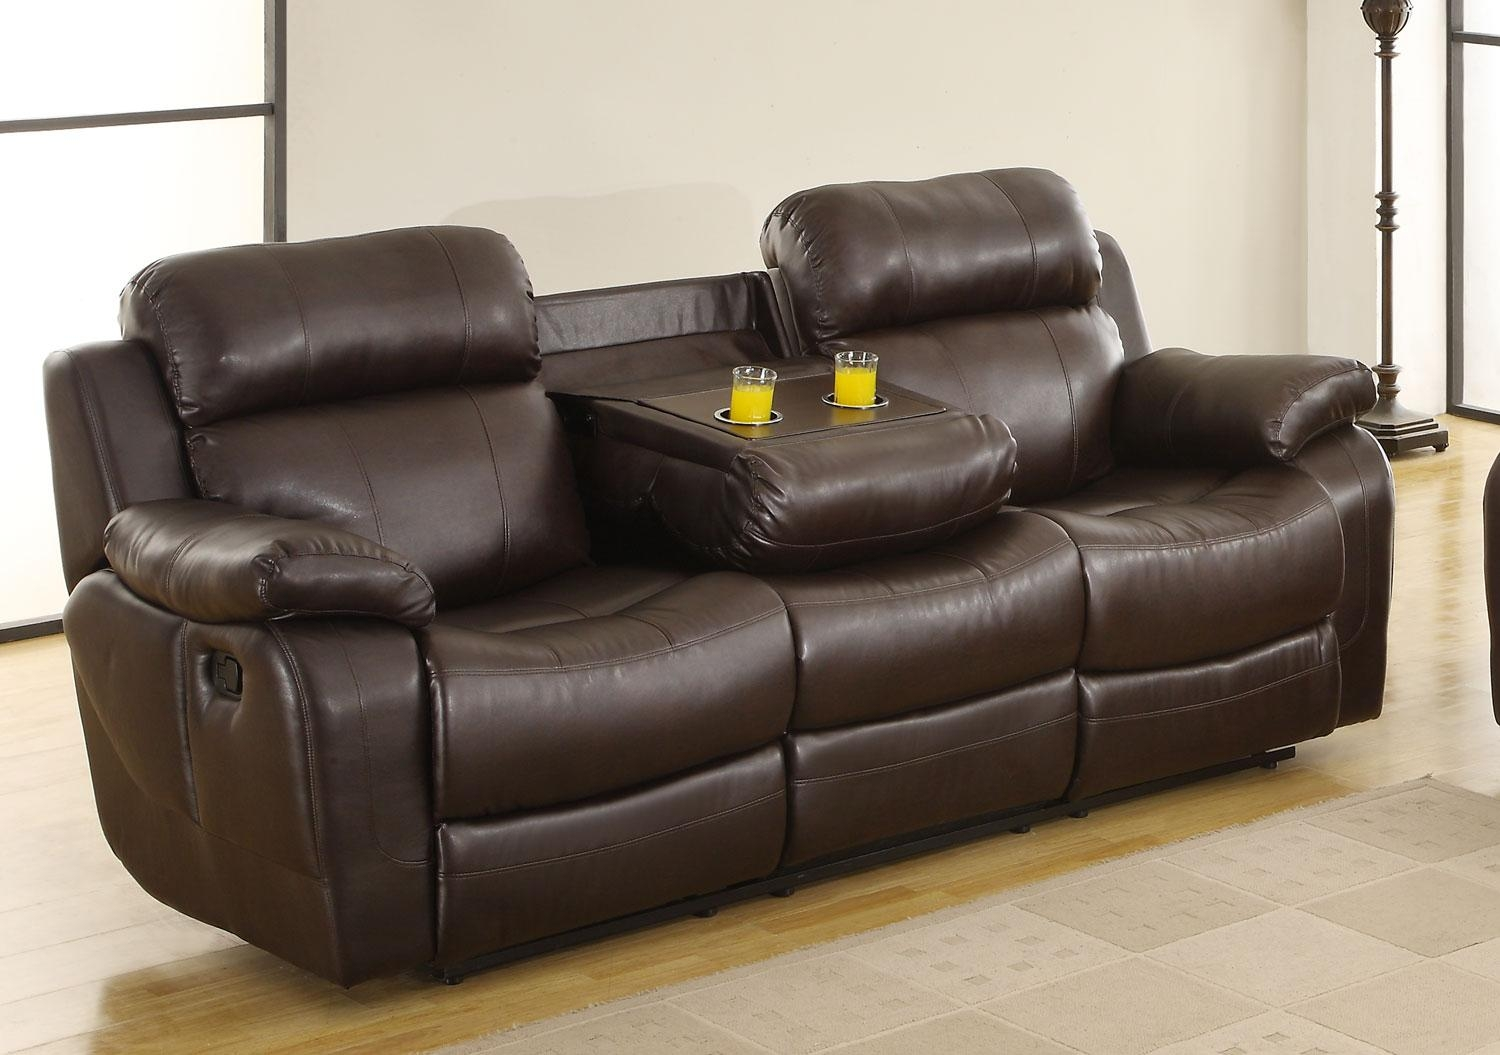 Sofas Center : Reclining Sofa With Console Double Power Recliner With Regard To Sofas With Consoles (Image 13 of 20)